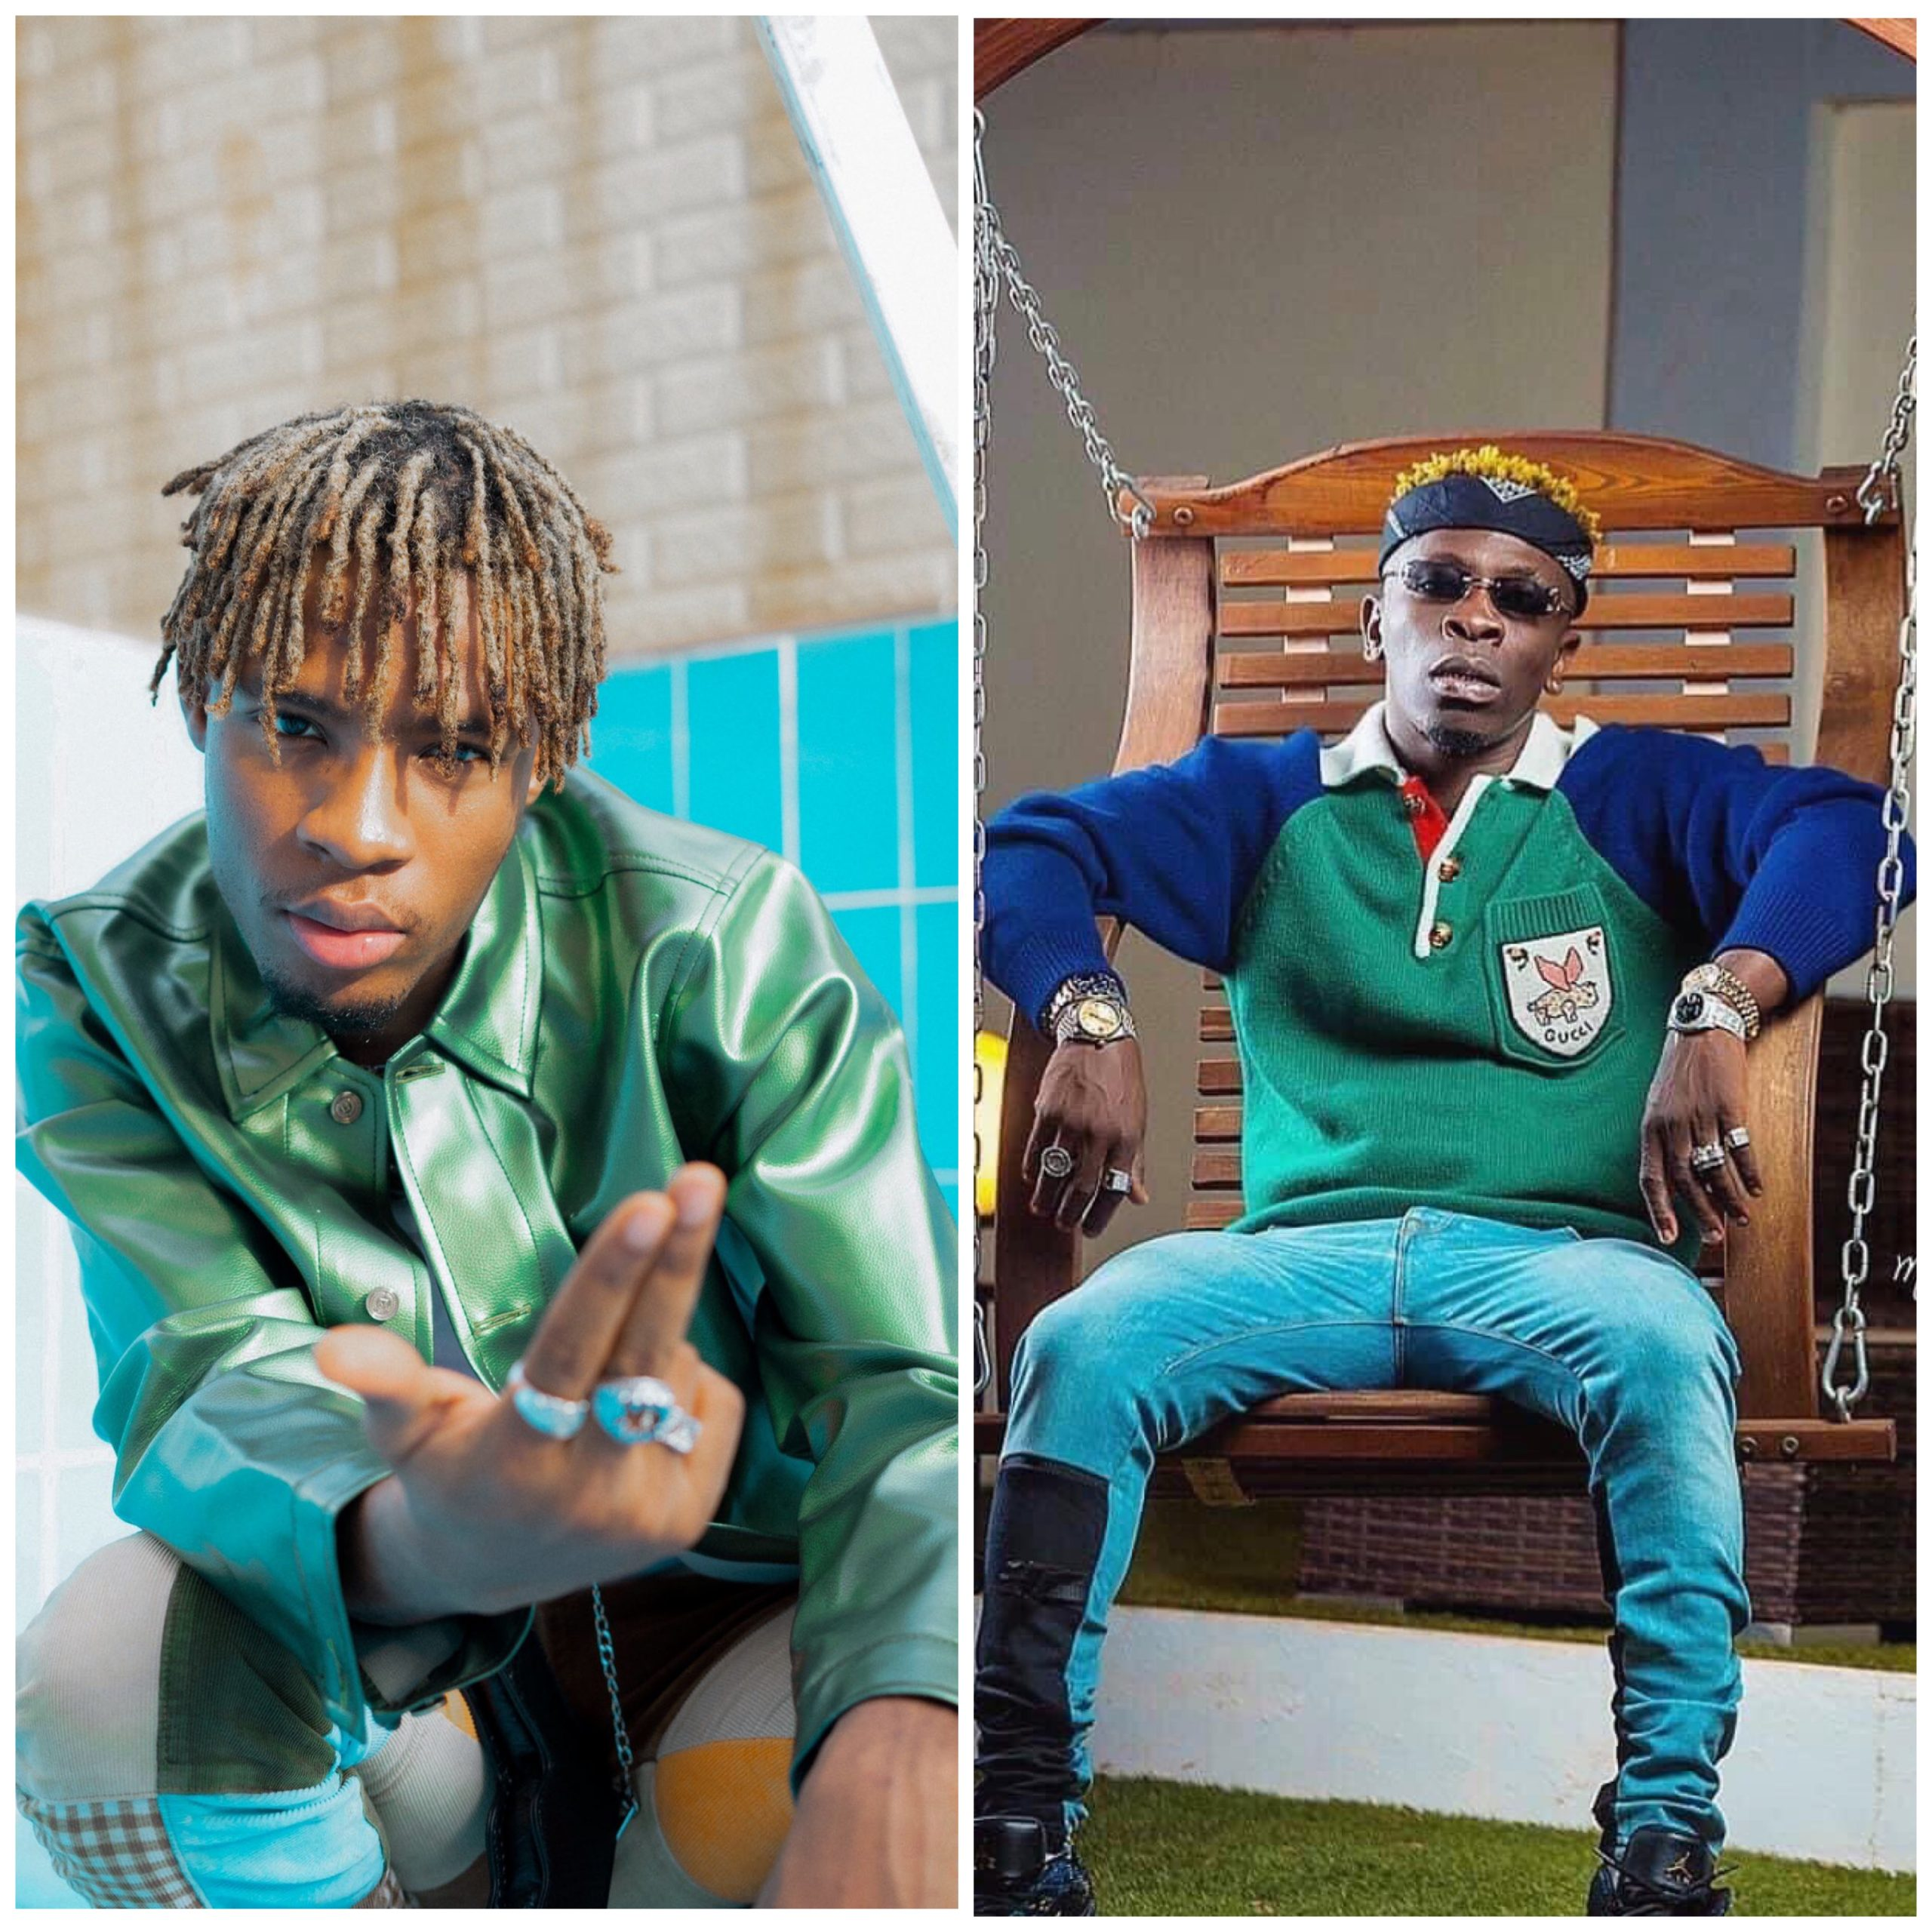 """Shatta Wale Is My Favorite Artiste In Ghana, l Have A Hook For Him On My Song"" - Nigerian Icon Joeboy"